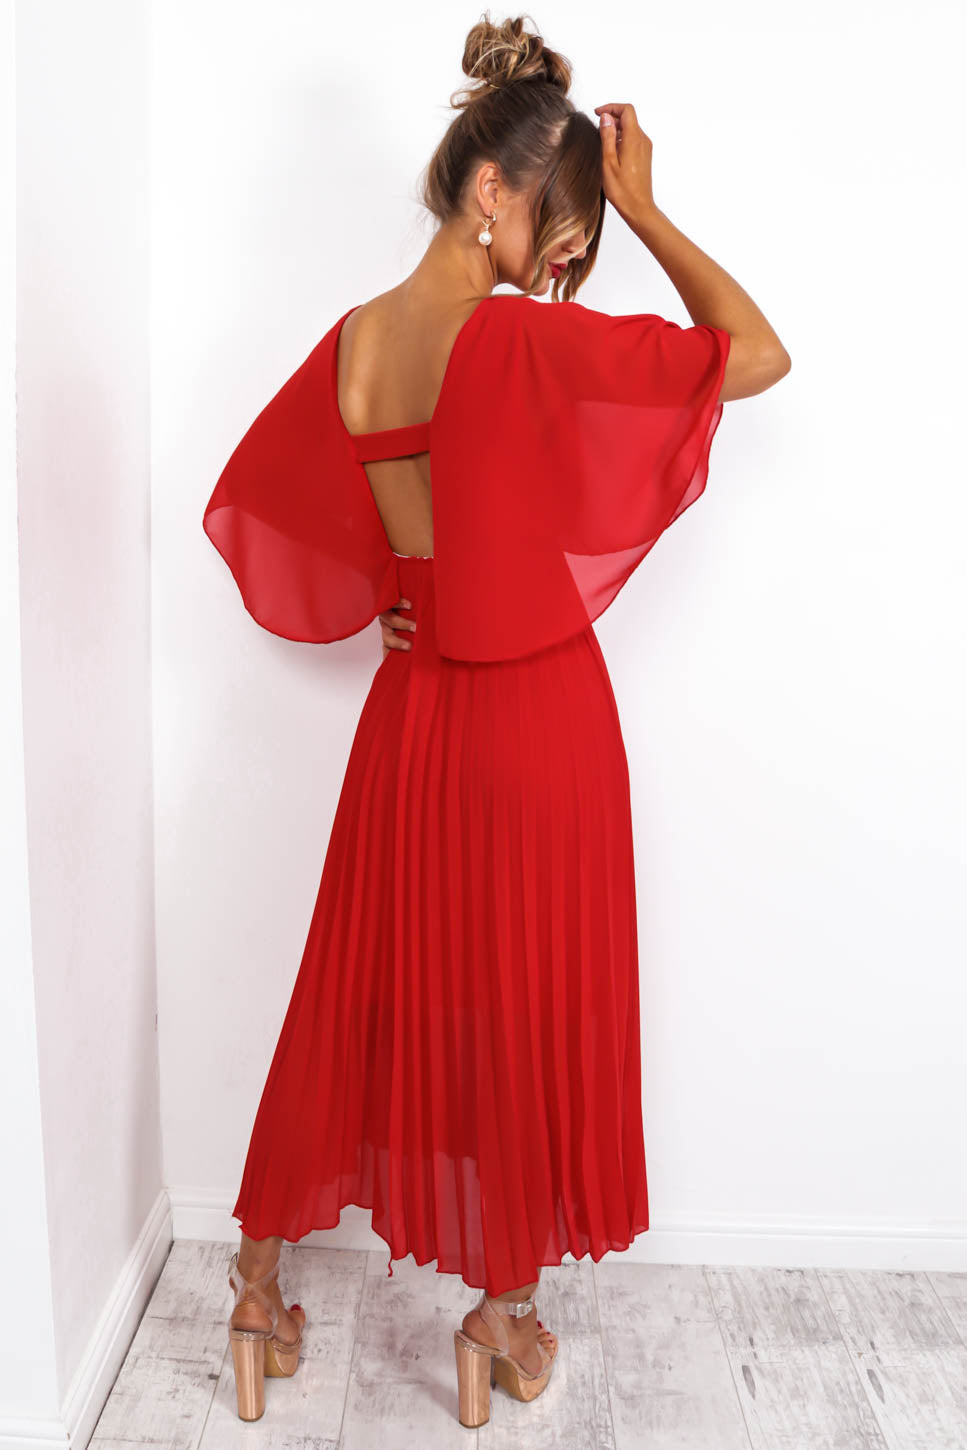 https://cdn.shopify.com/s/files/1/0062/6661/7925/files/product-video-timeless-maxi-dress-in-red.mp4?5114